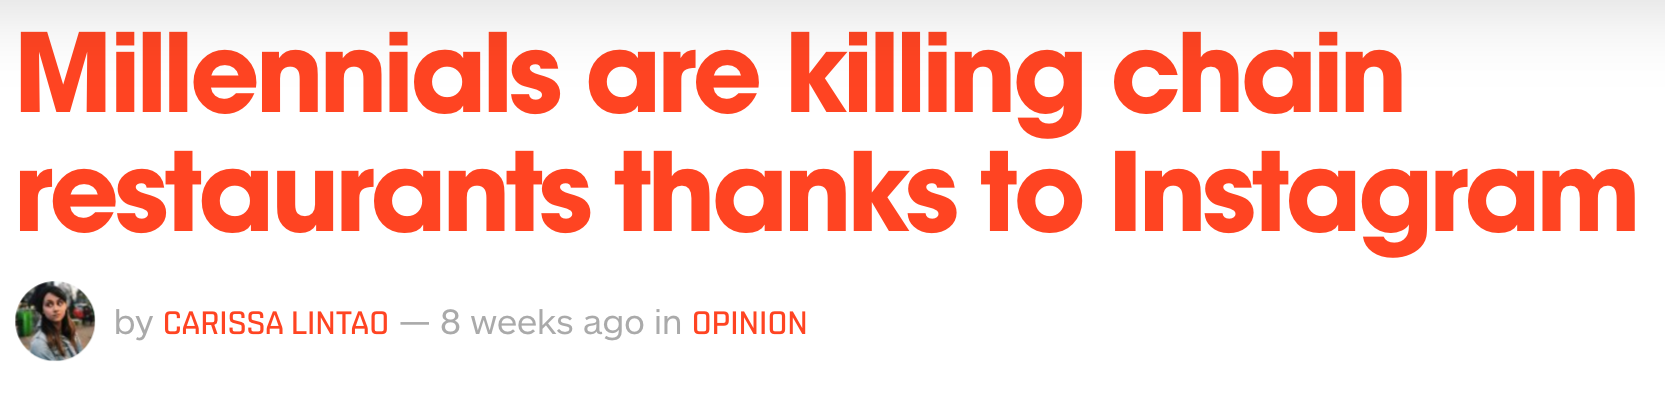 Things Millennials are killing